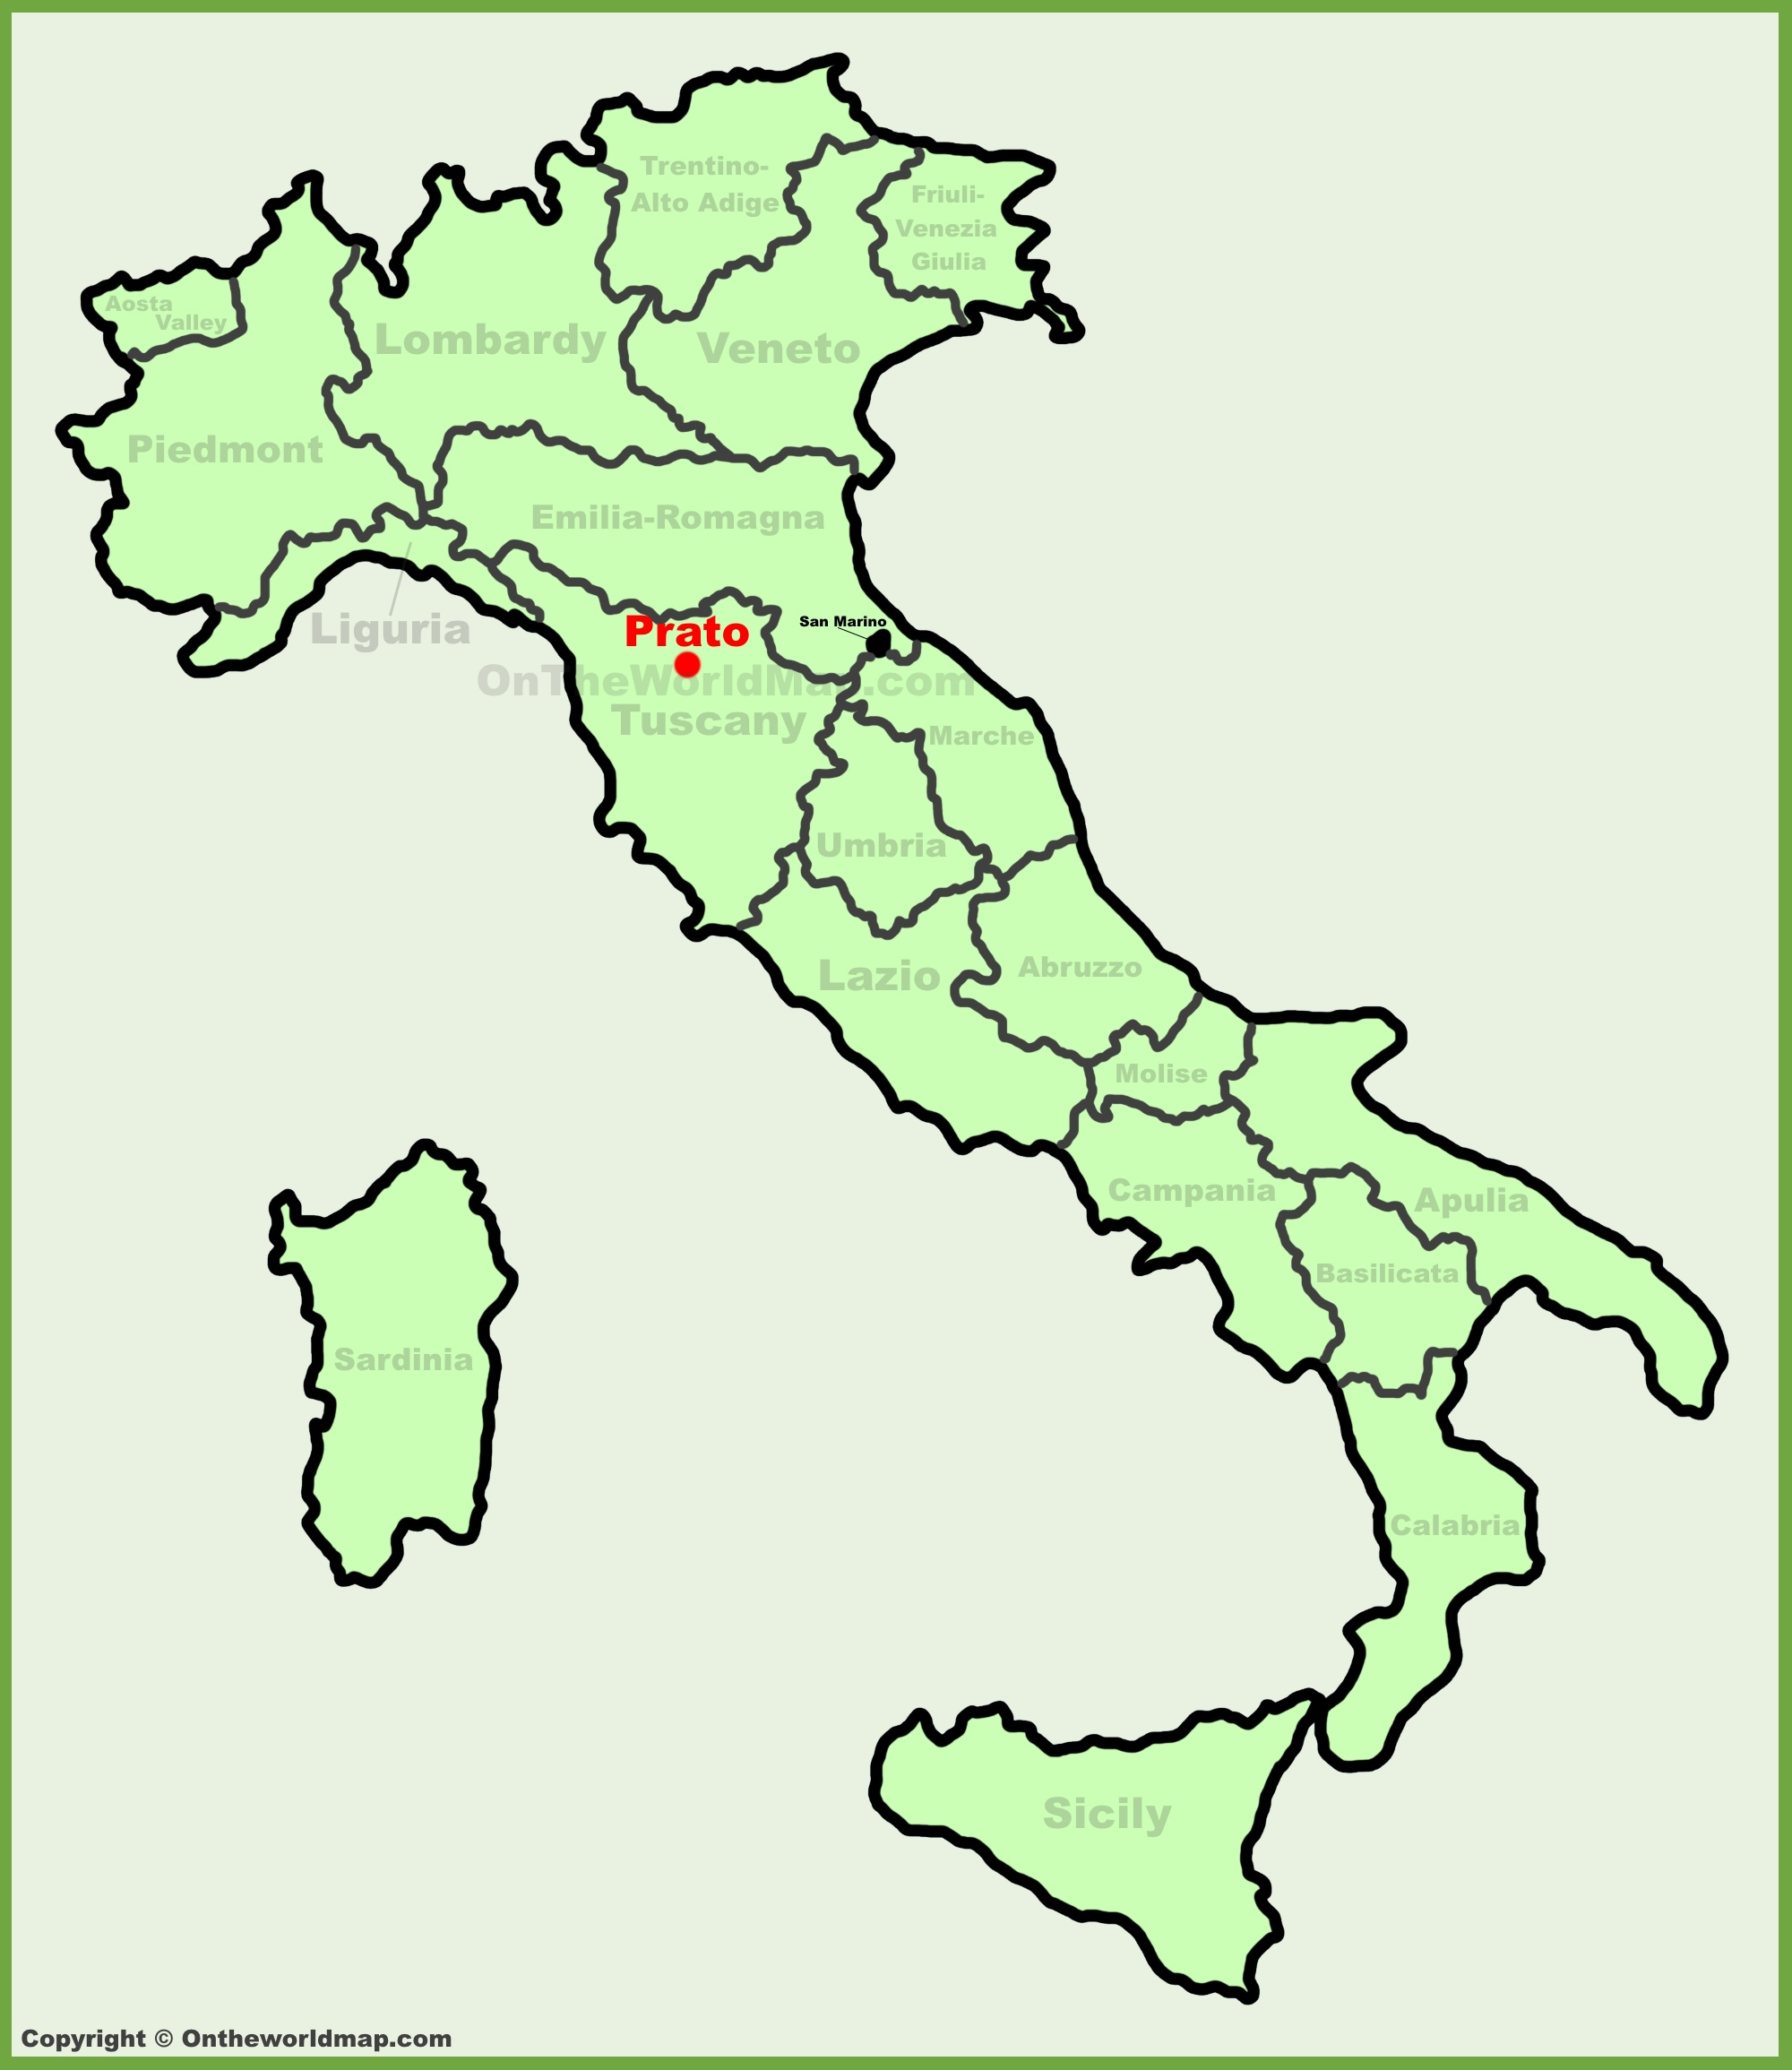 Prato location on the Italy map